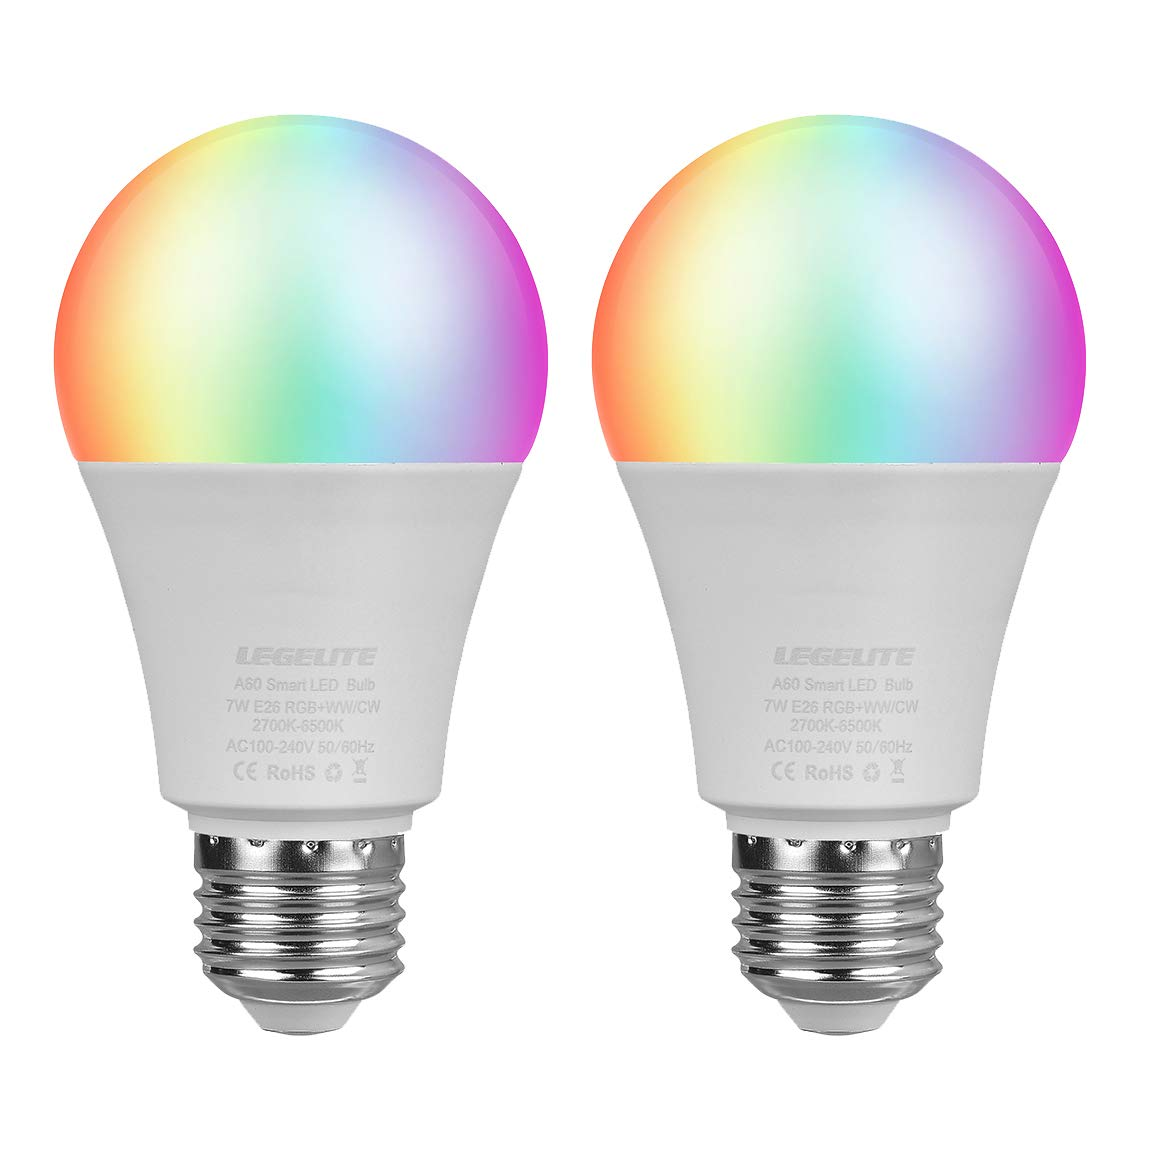 LED WiFi Smart Light Bulb, Works with Alexa, Google Home and IFTTT, RGBCW Dimmable WiFi Light Bulbs, No Hub Required, E26 A19 60W Equivalent (2 Pack)